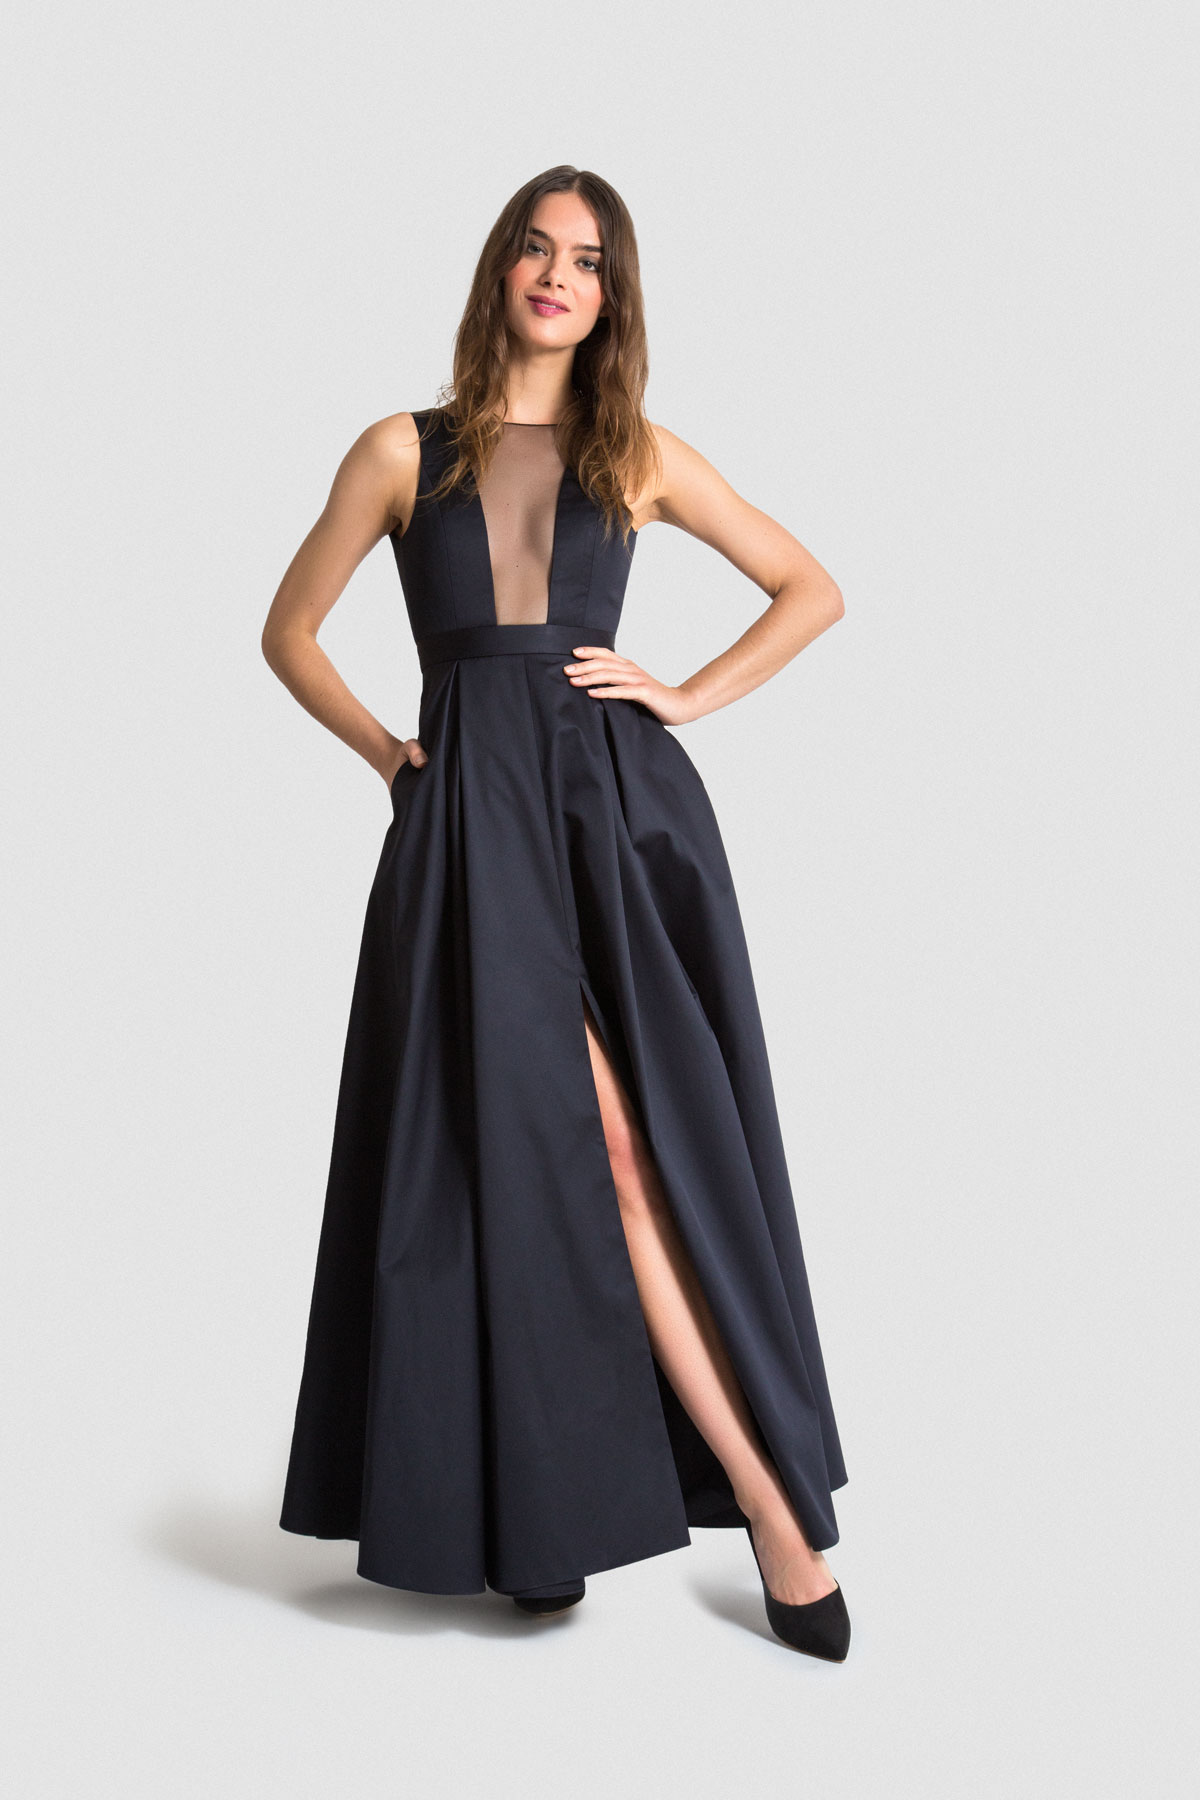 Vaute Couture vegan satin gown